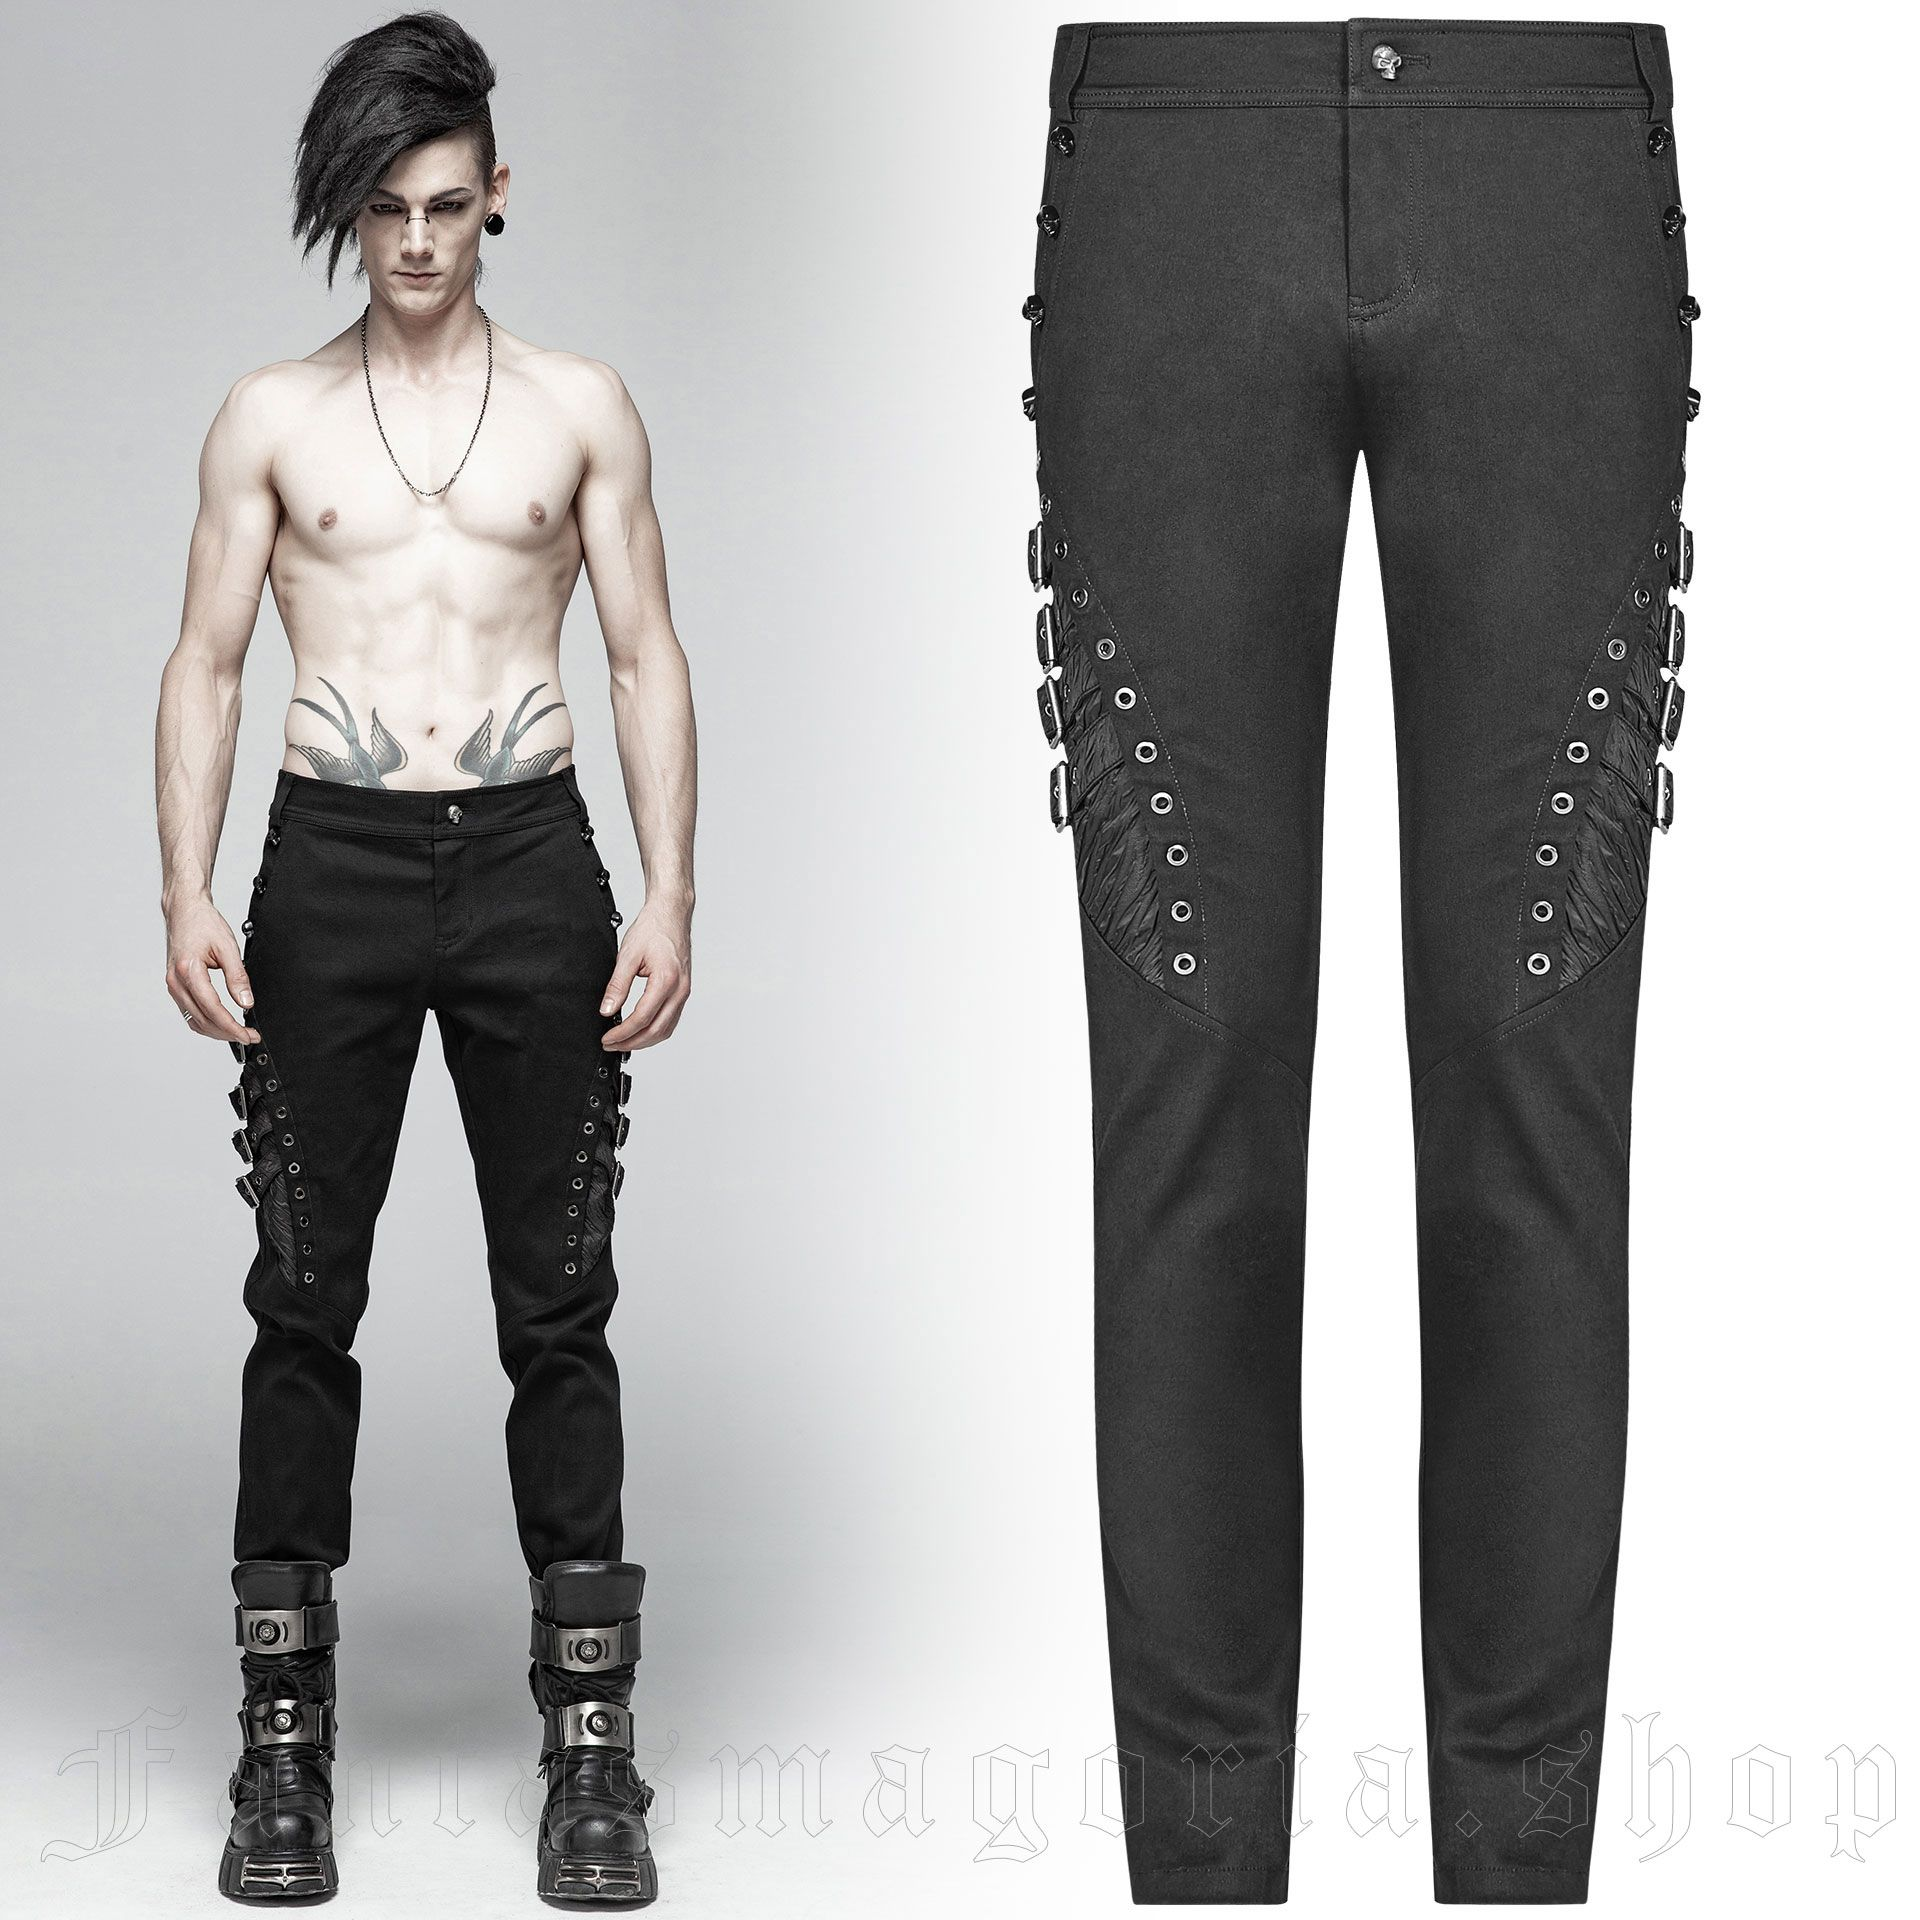 men's Sanctum Trousers by PUNK RAVE brand, code: WK-365